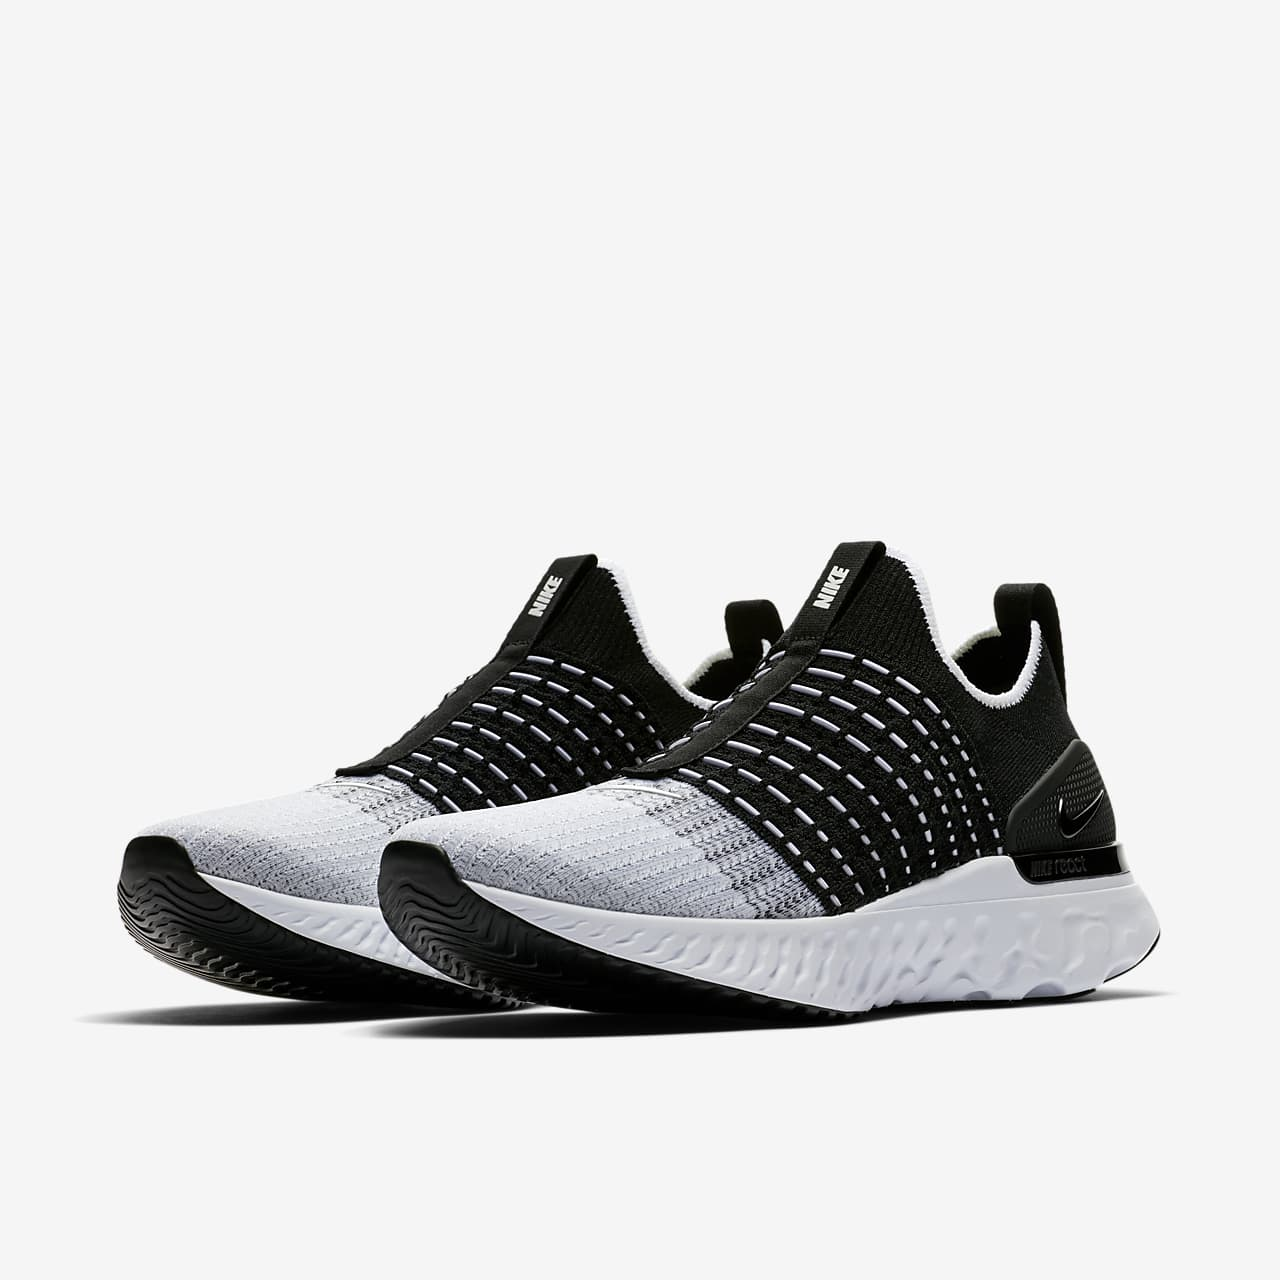 nike flyknit shoes price